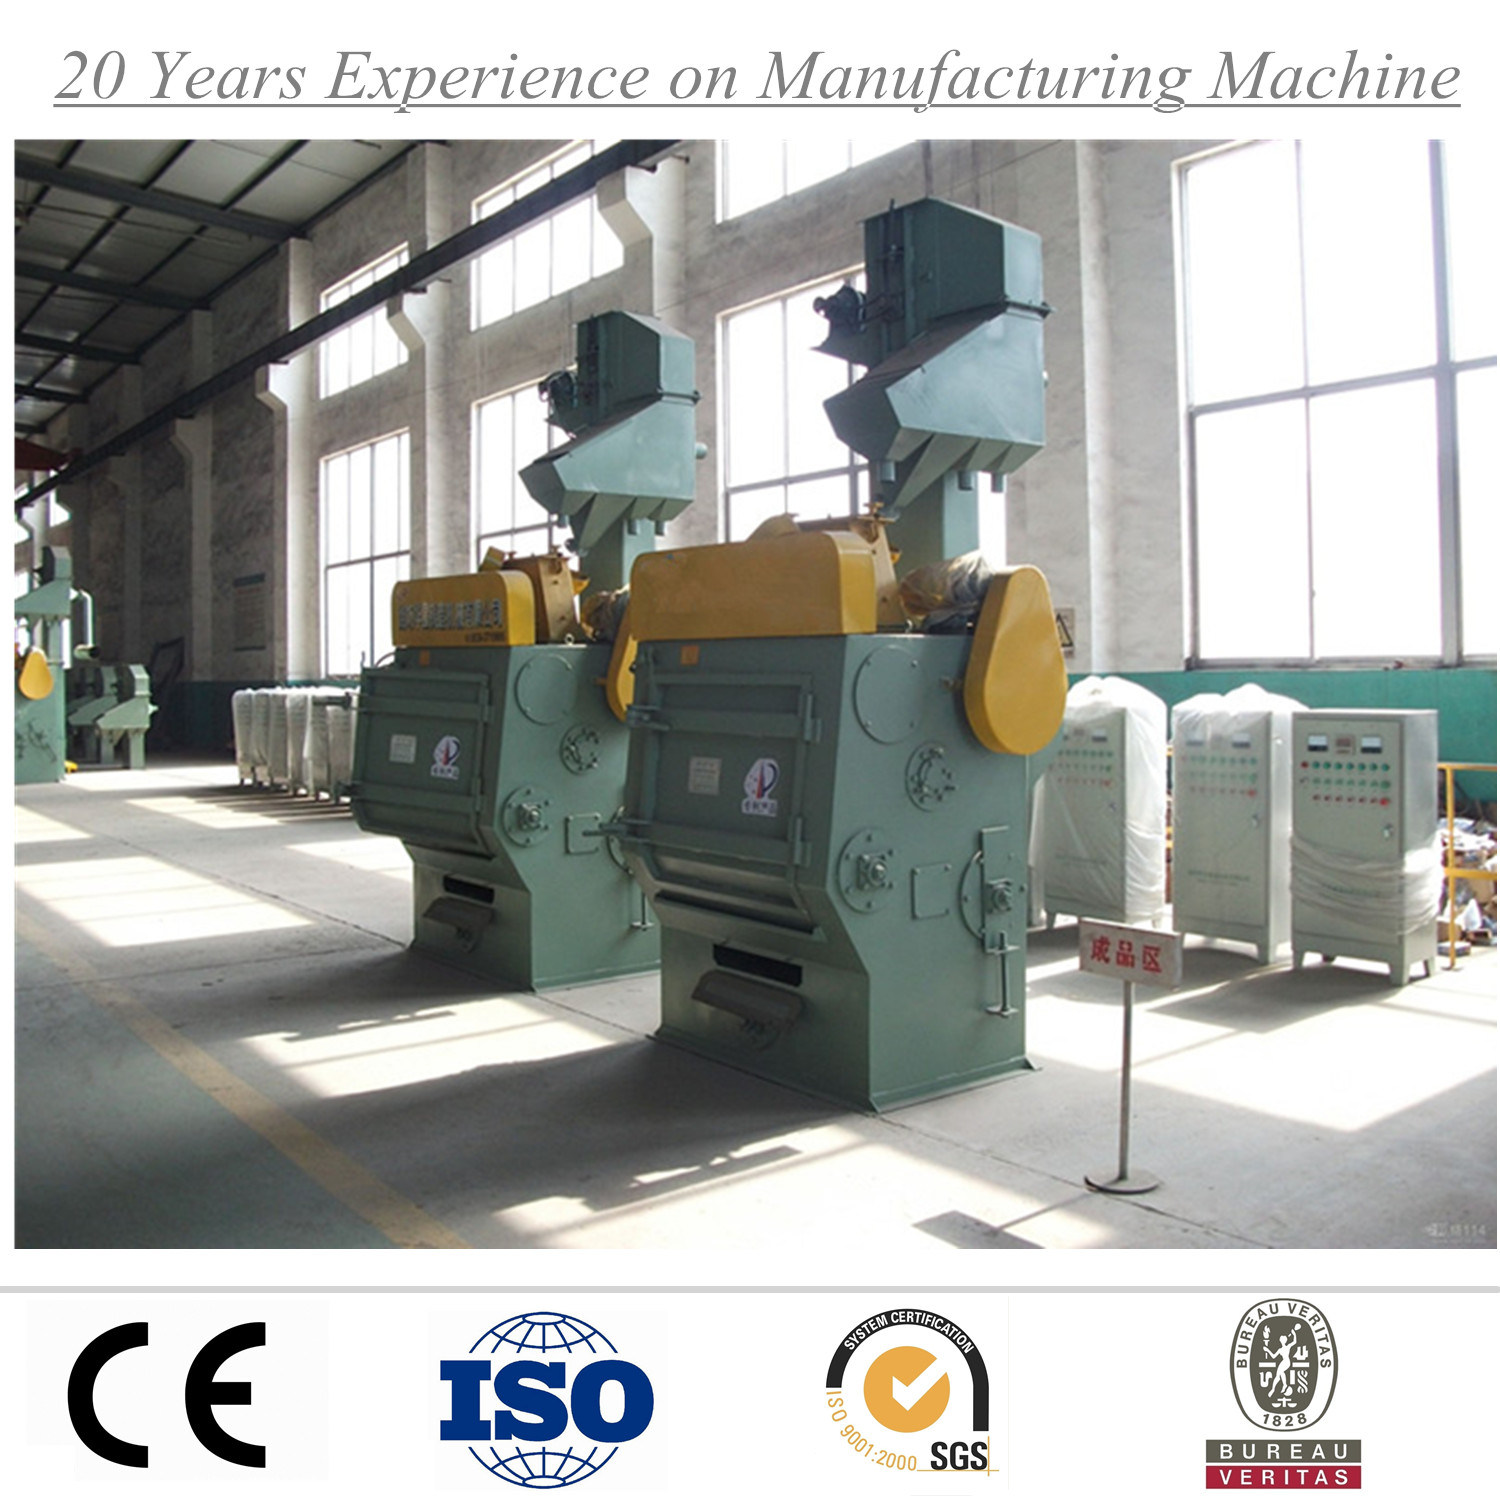 Q3210 Tumble Belt Shot Blasting Machine for Cleaning Stainless Steel